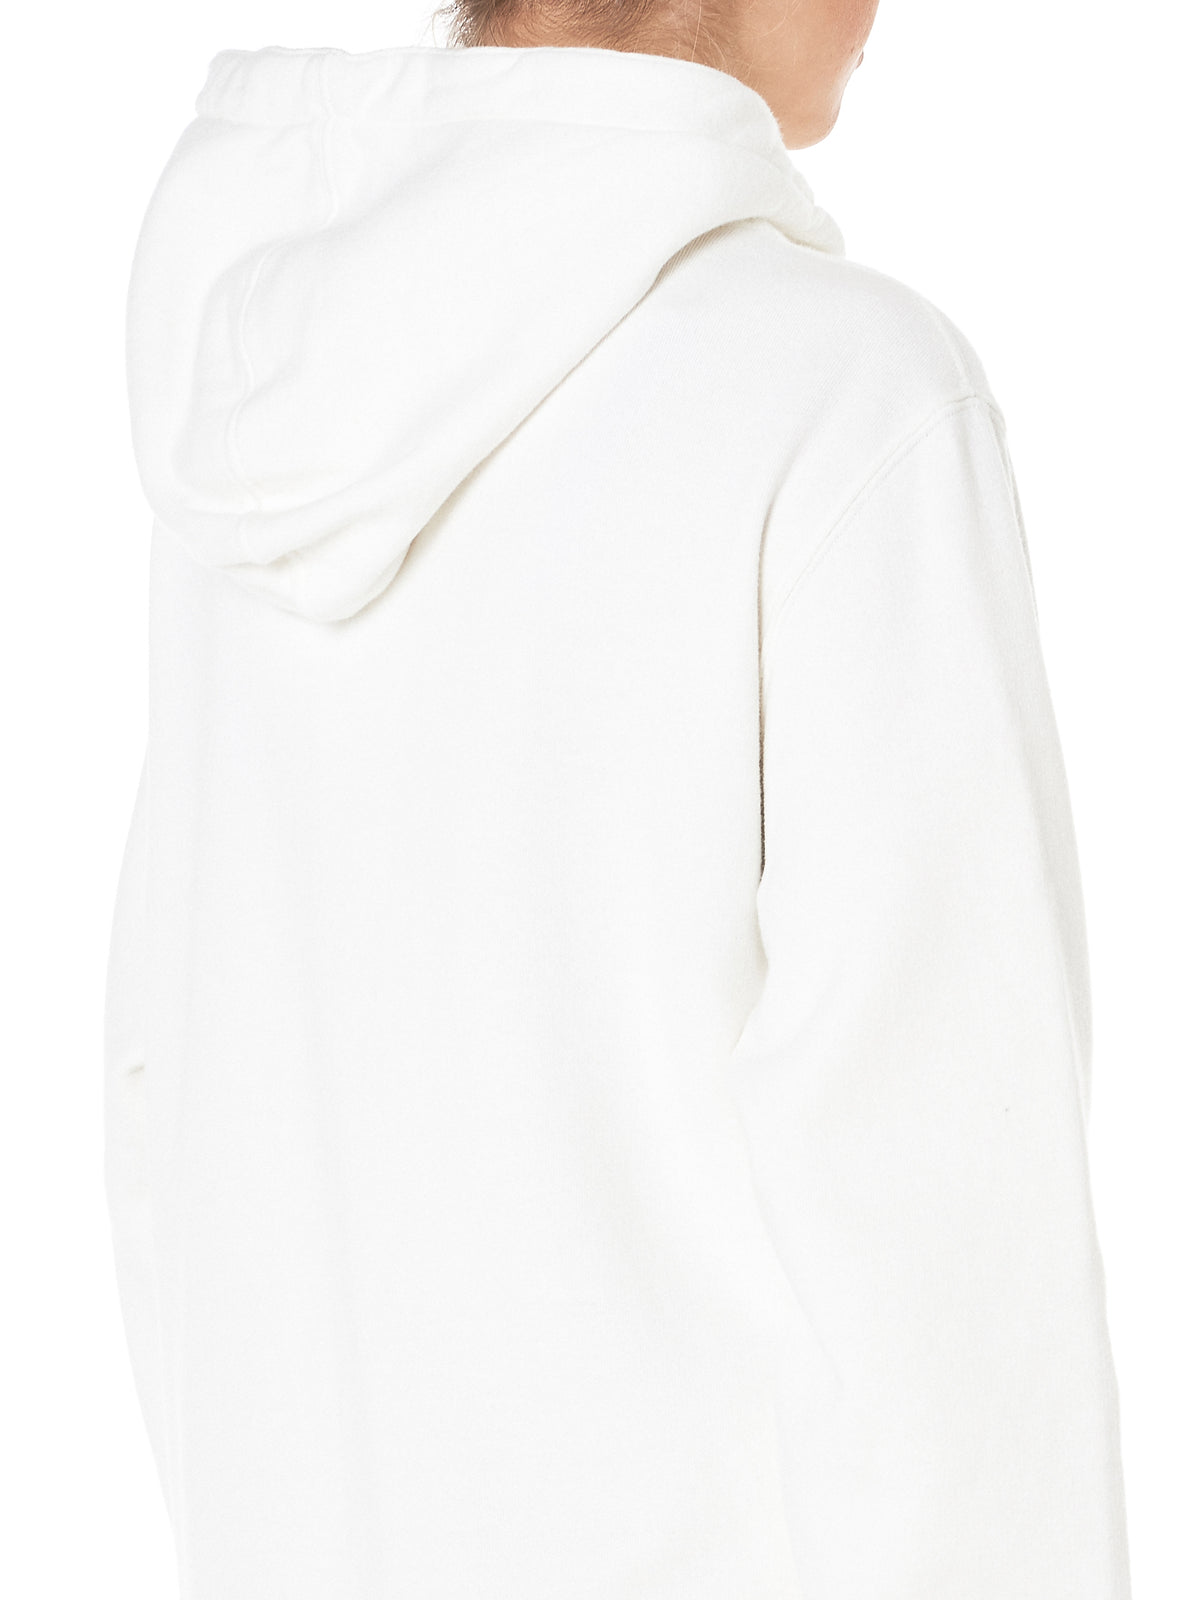 'REDFORD' Hooded Sweater (REDFORD-T605-WHITE)